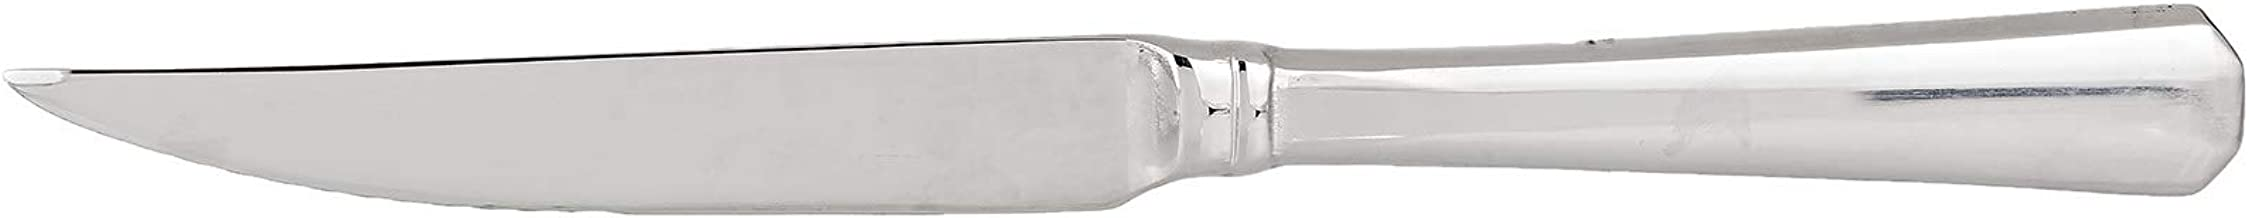 Winsor Stainless Steel Steak Knife